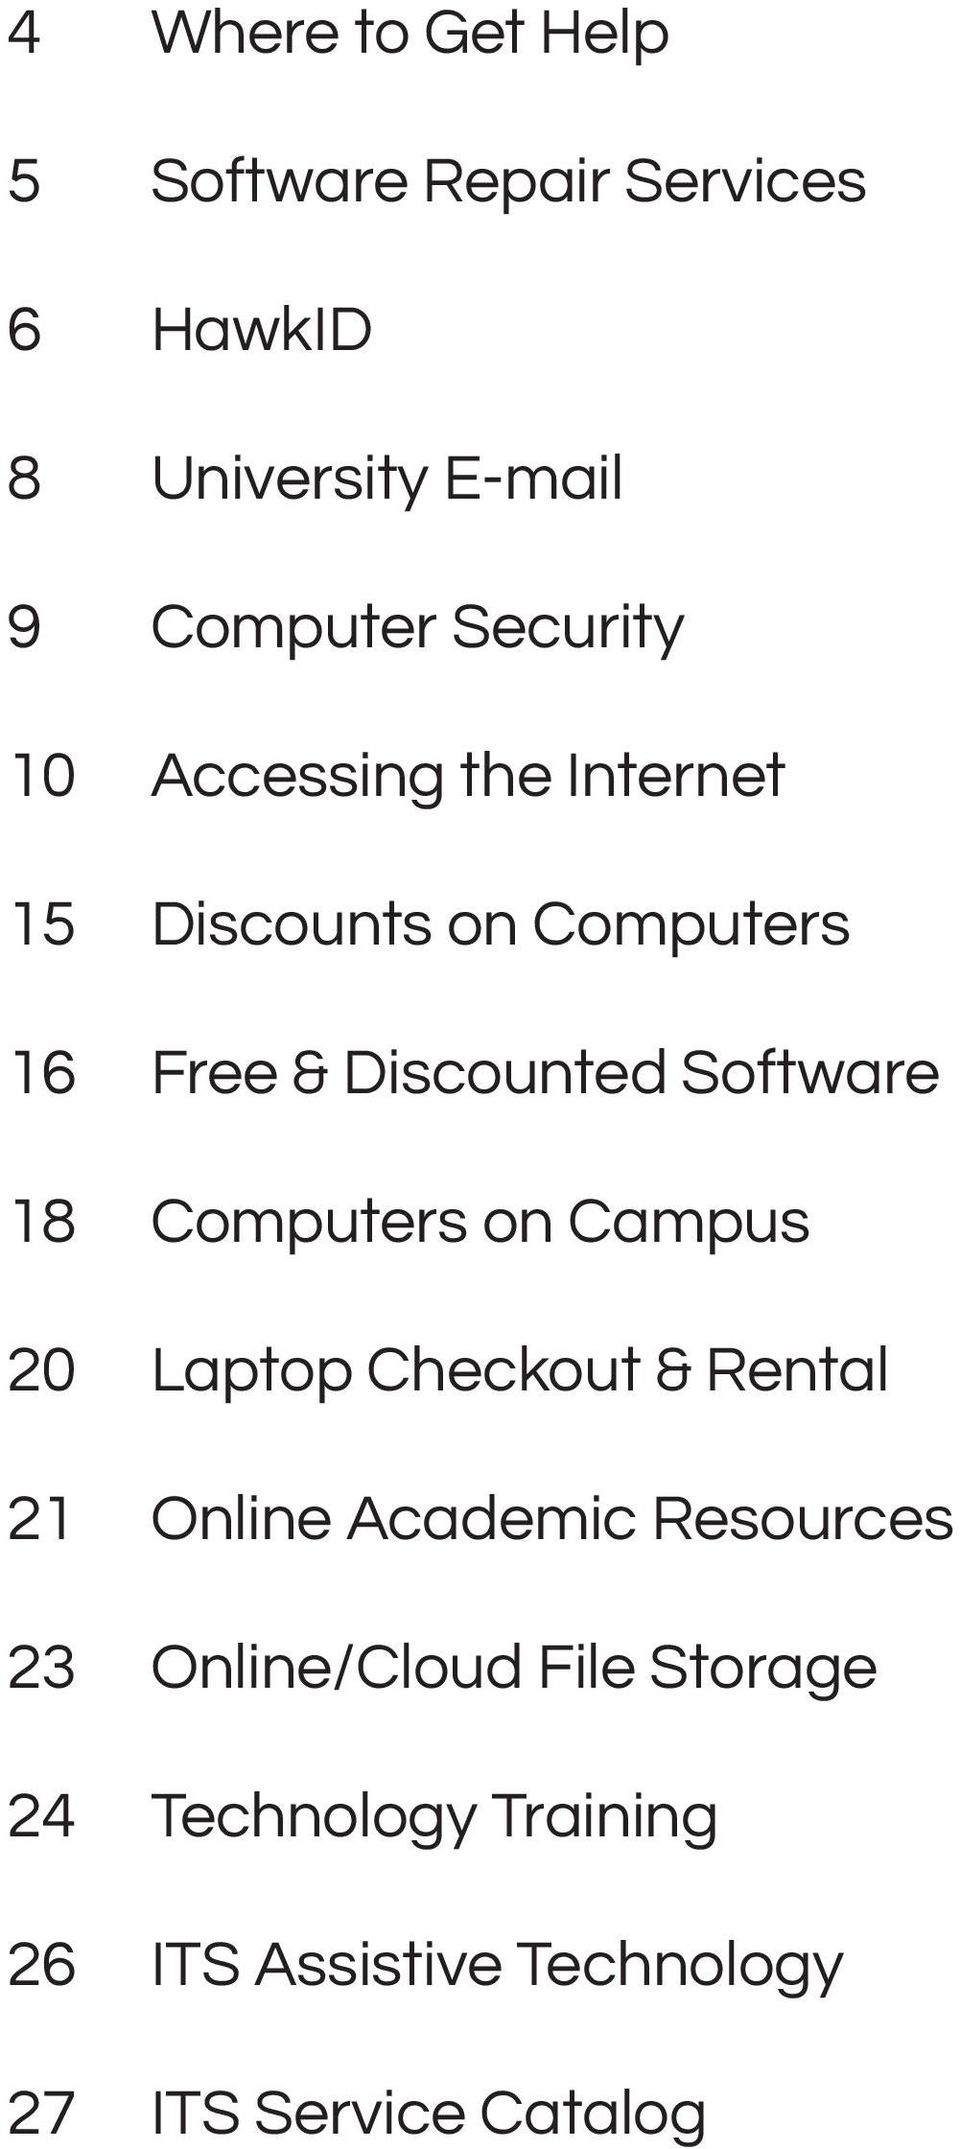 Software 18 Computers on Campus 20 Laptop Checkout & Rental 21 Online Academic Resources